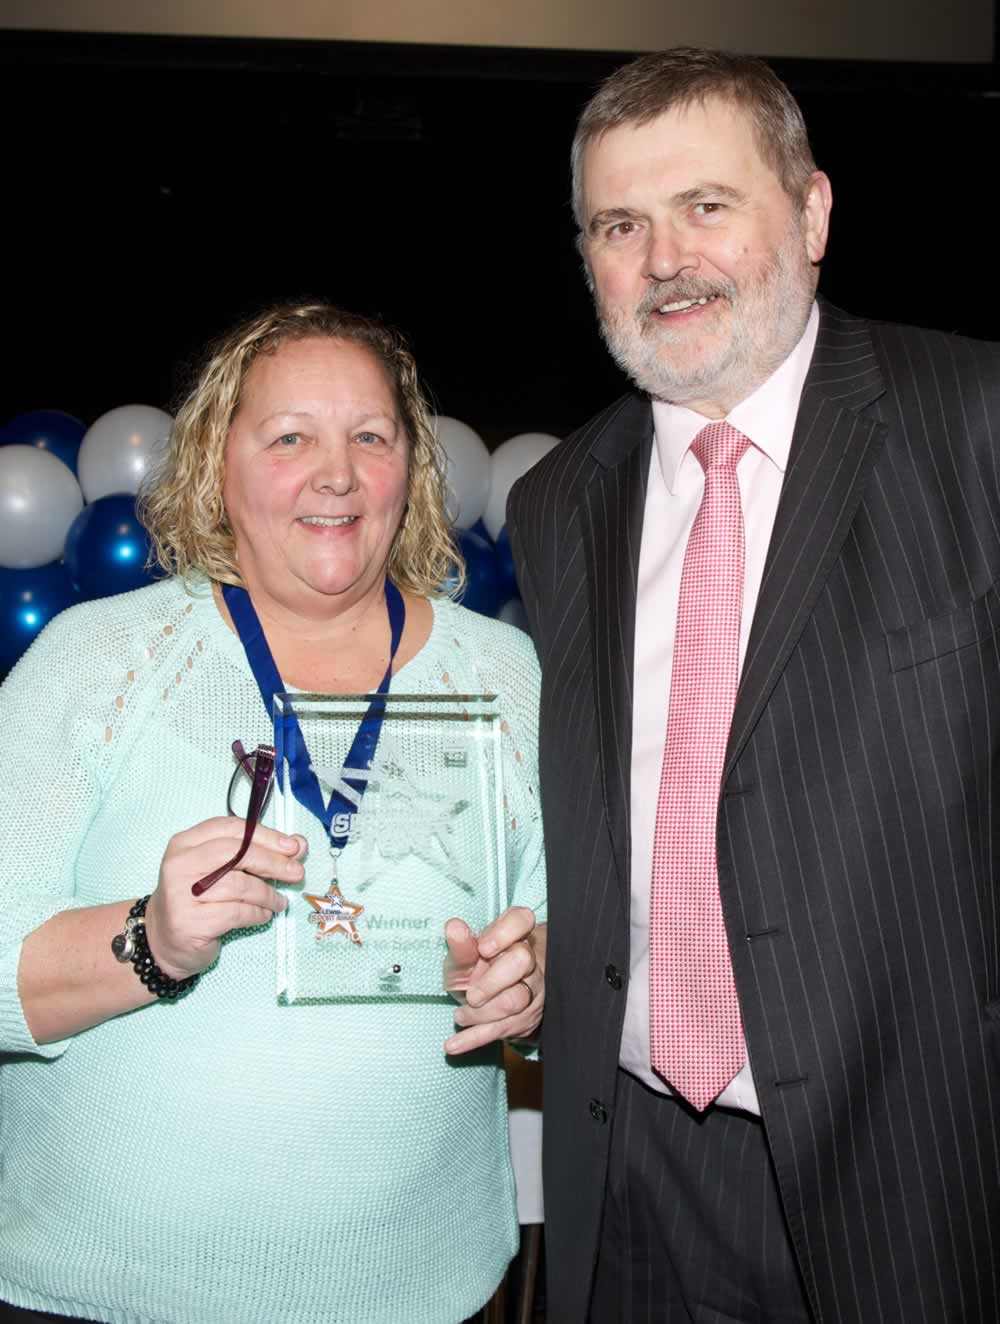 Shirley with her Service to Sport Award